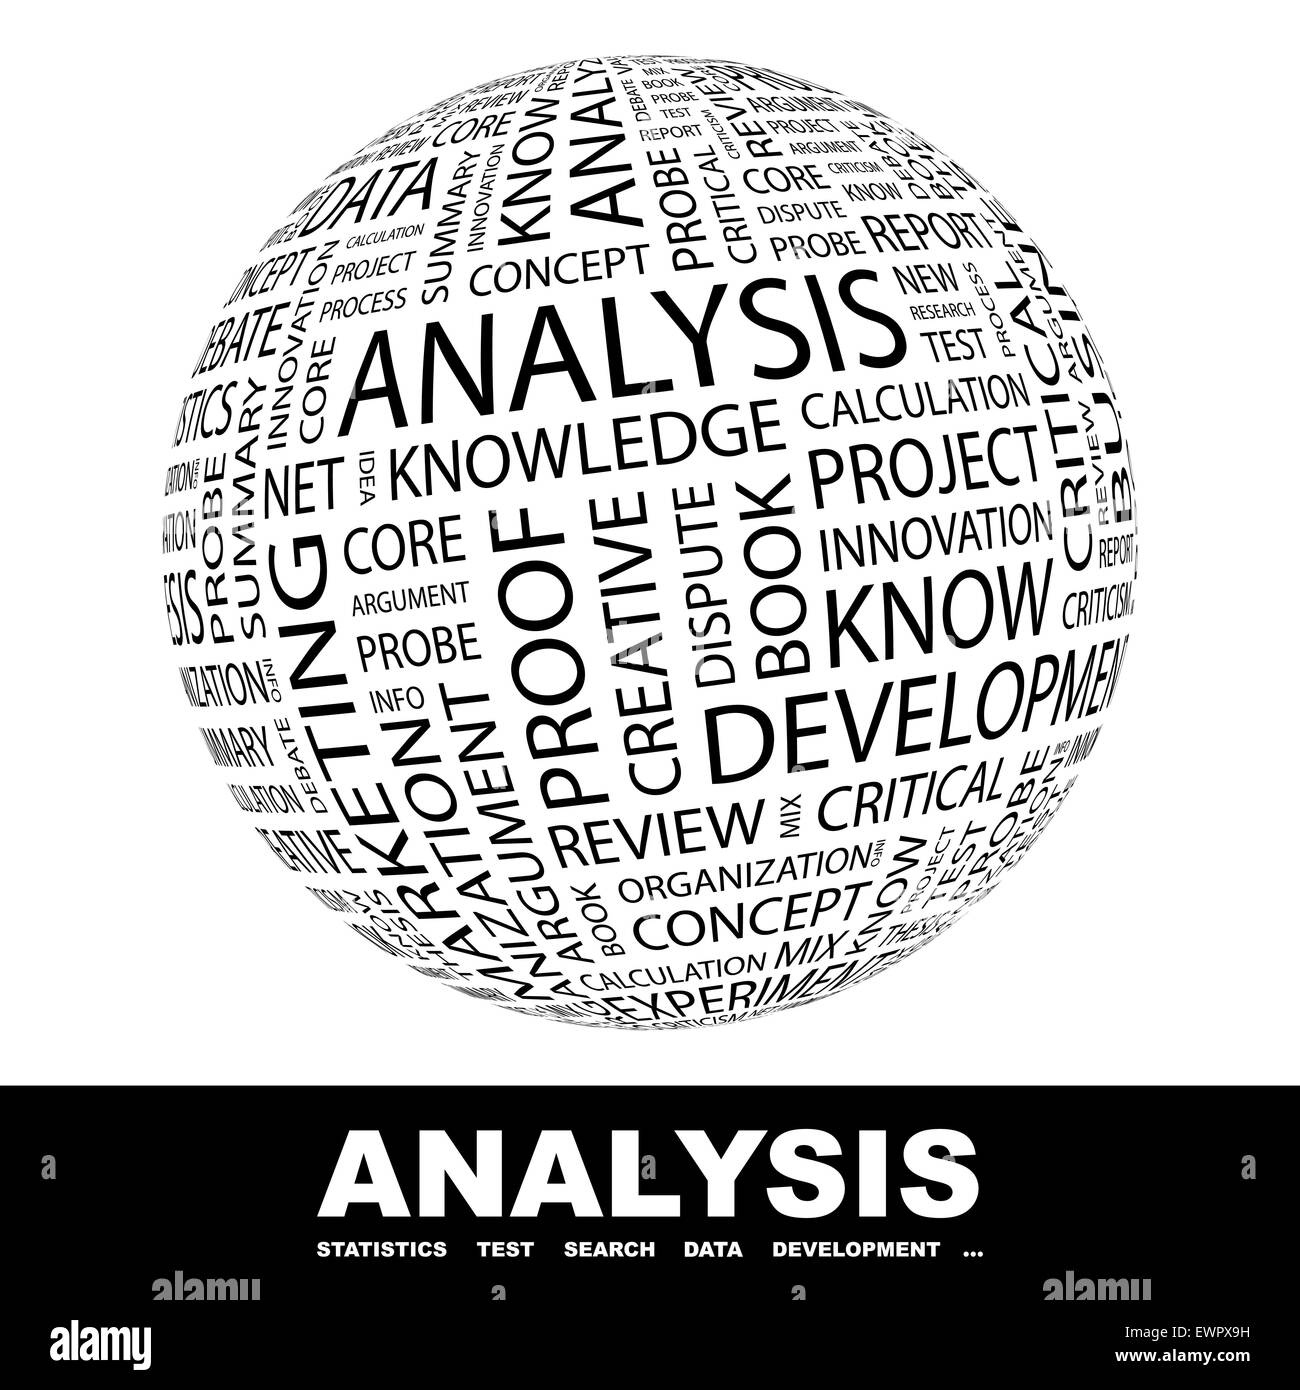 ANALYSIS. Word cloud illustration. Tag cloud concept collage. - Stock Image